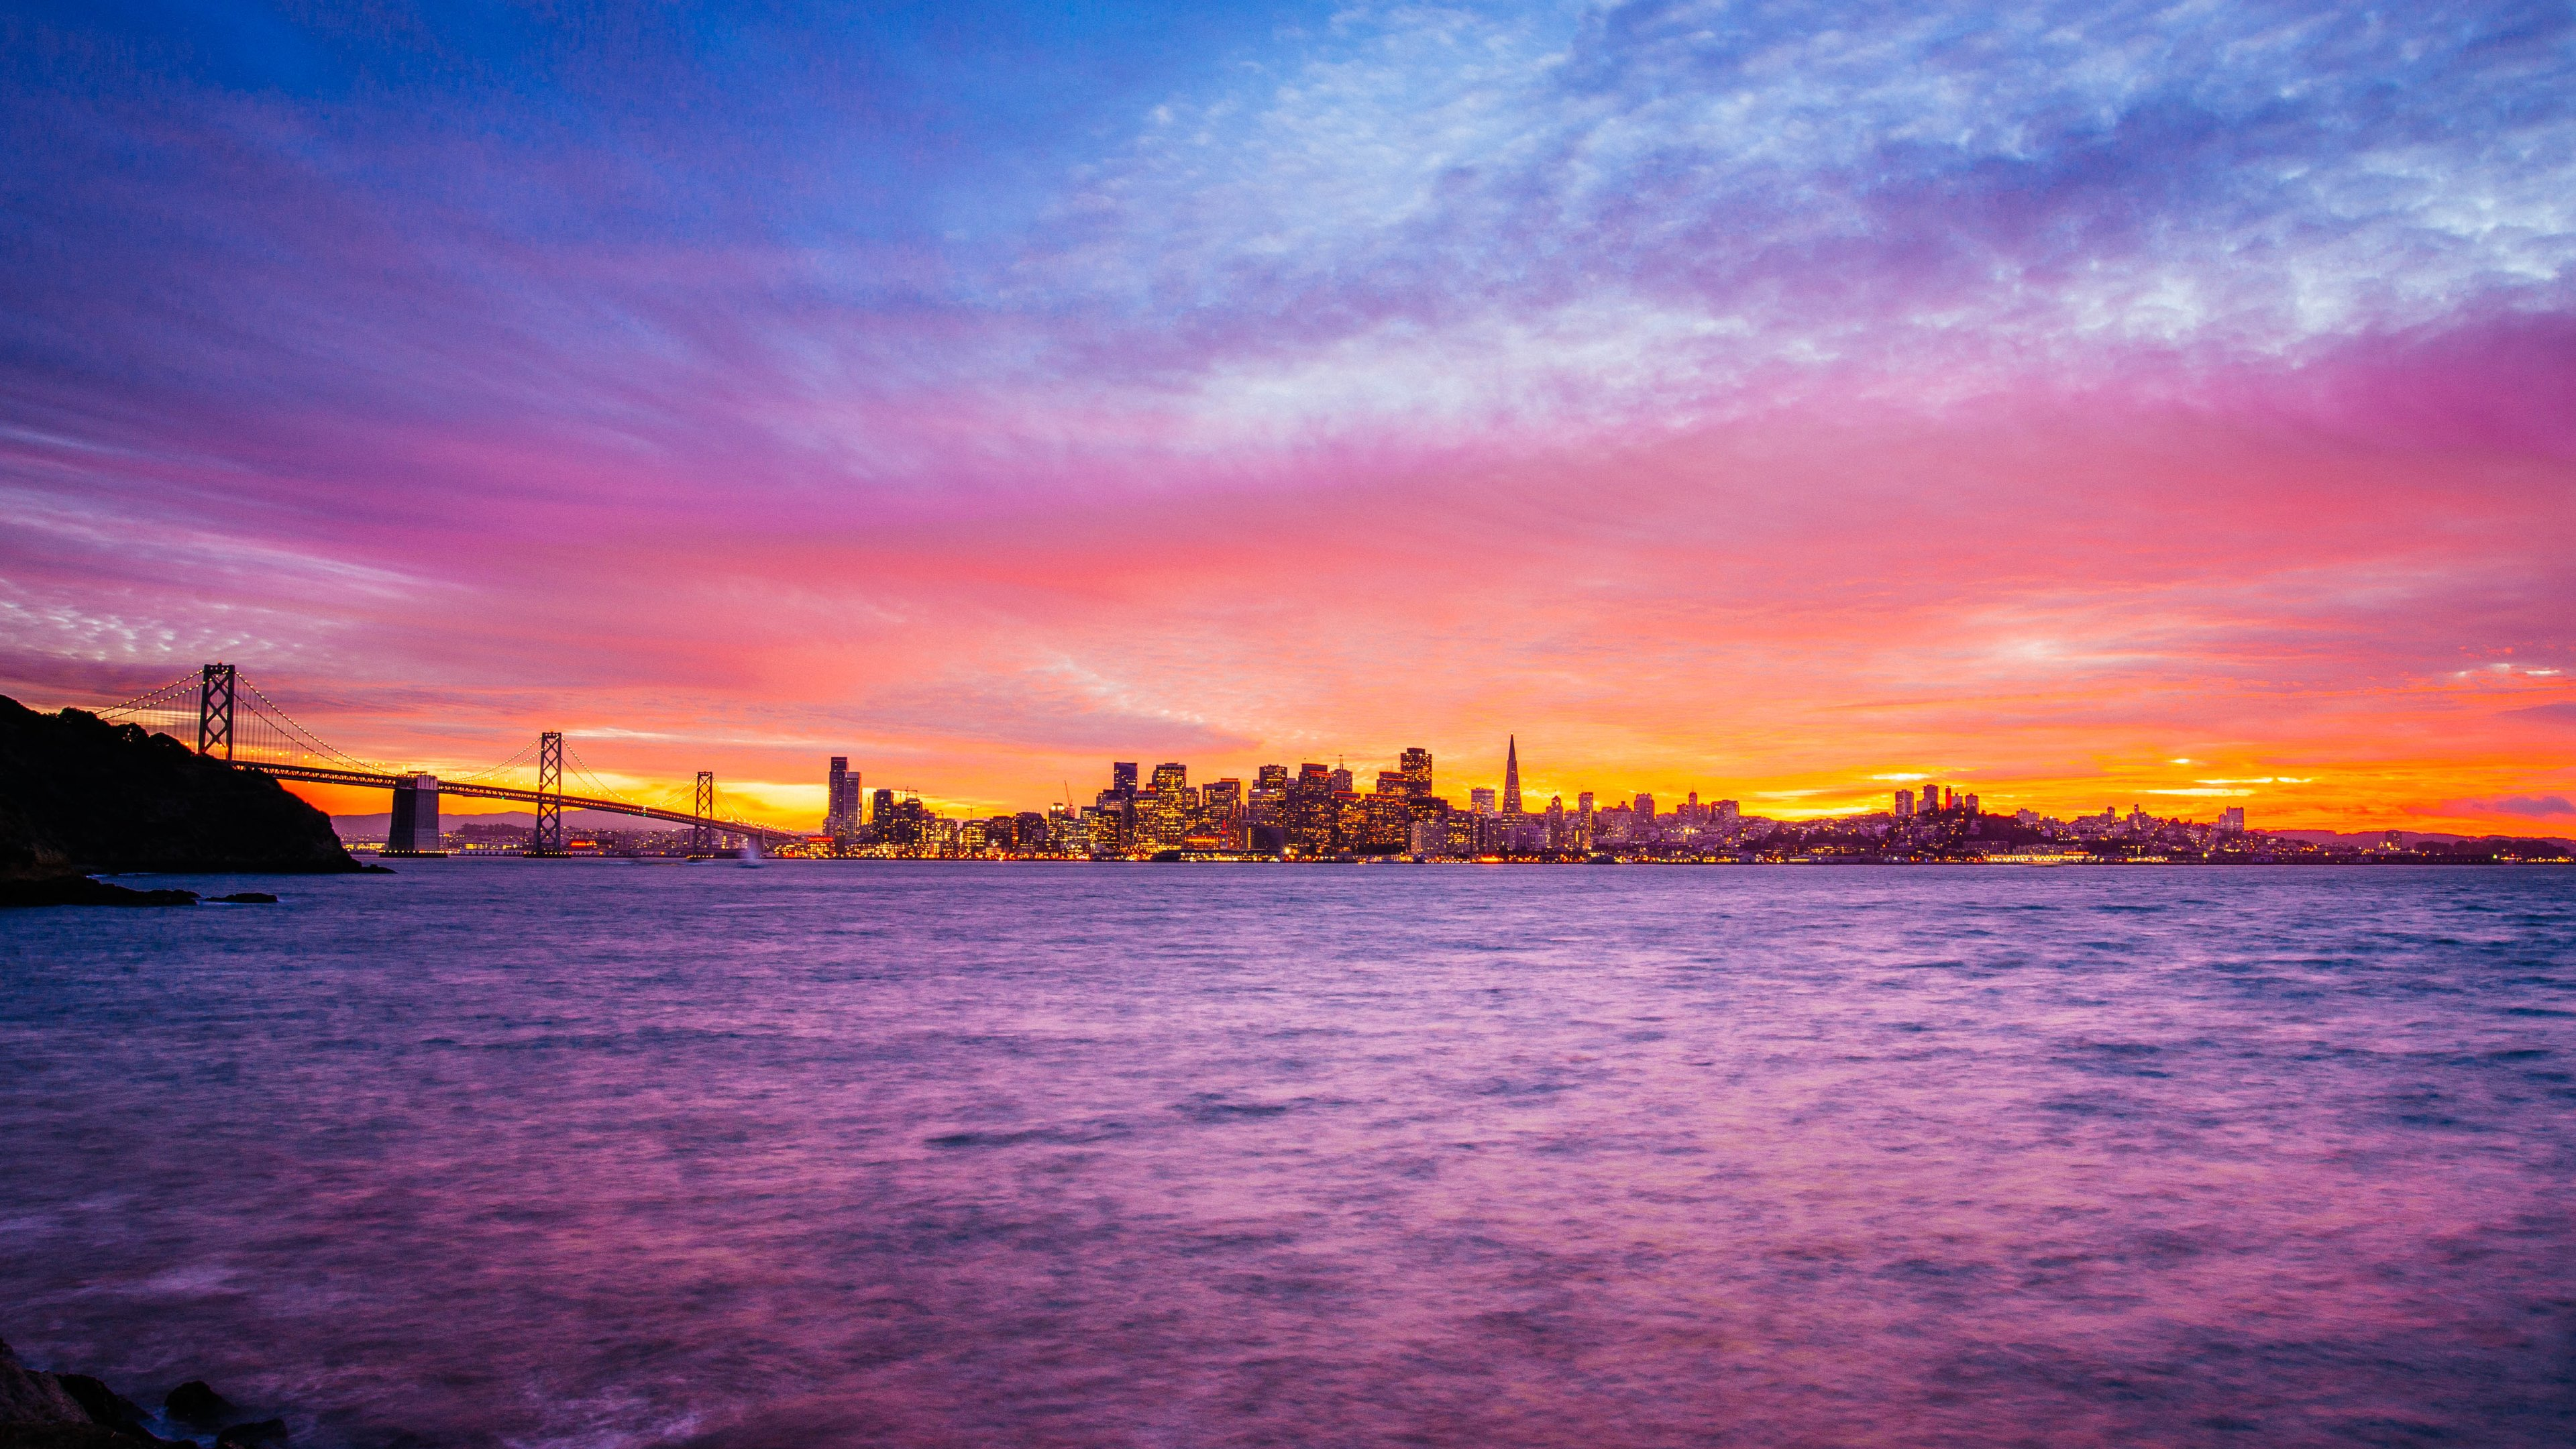 San Francisco   Treasure Island   Sunset 3840x2160